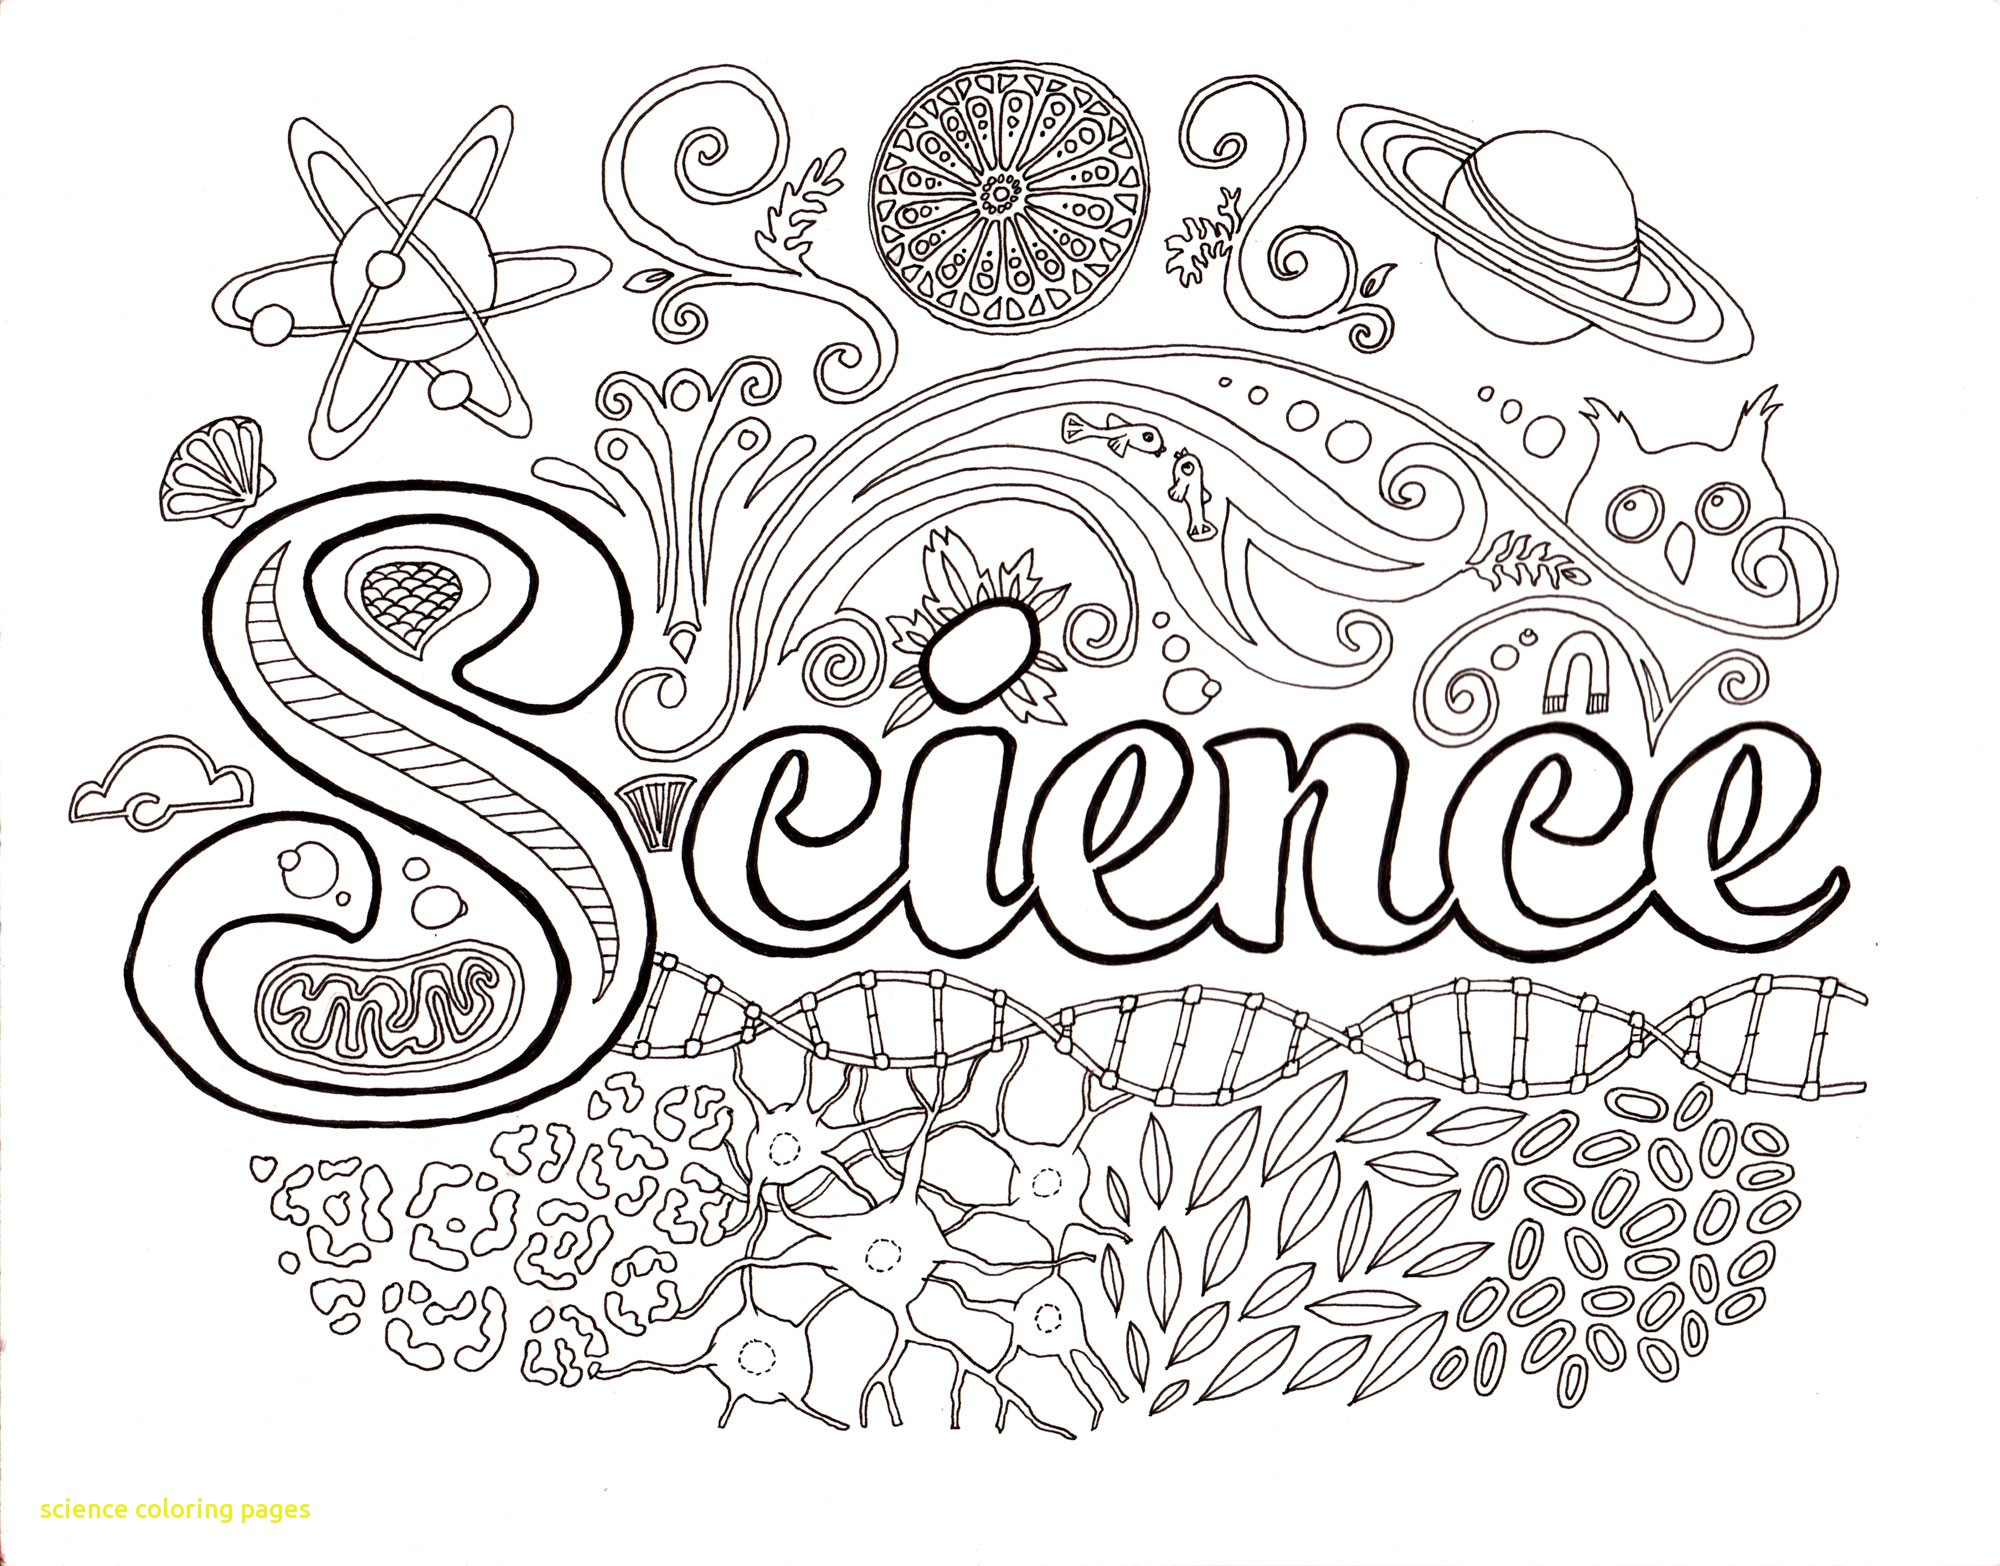 2000x1566 Coloring Pages For Earth Science New Science Coloring Pages